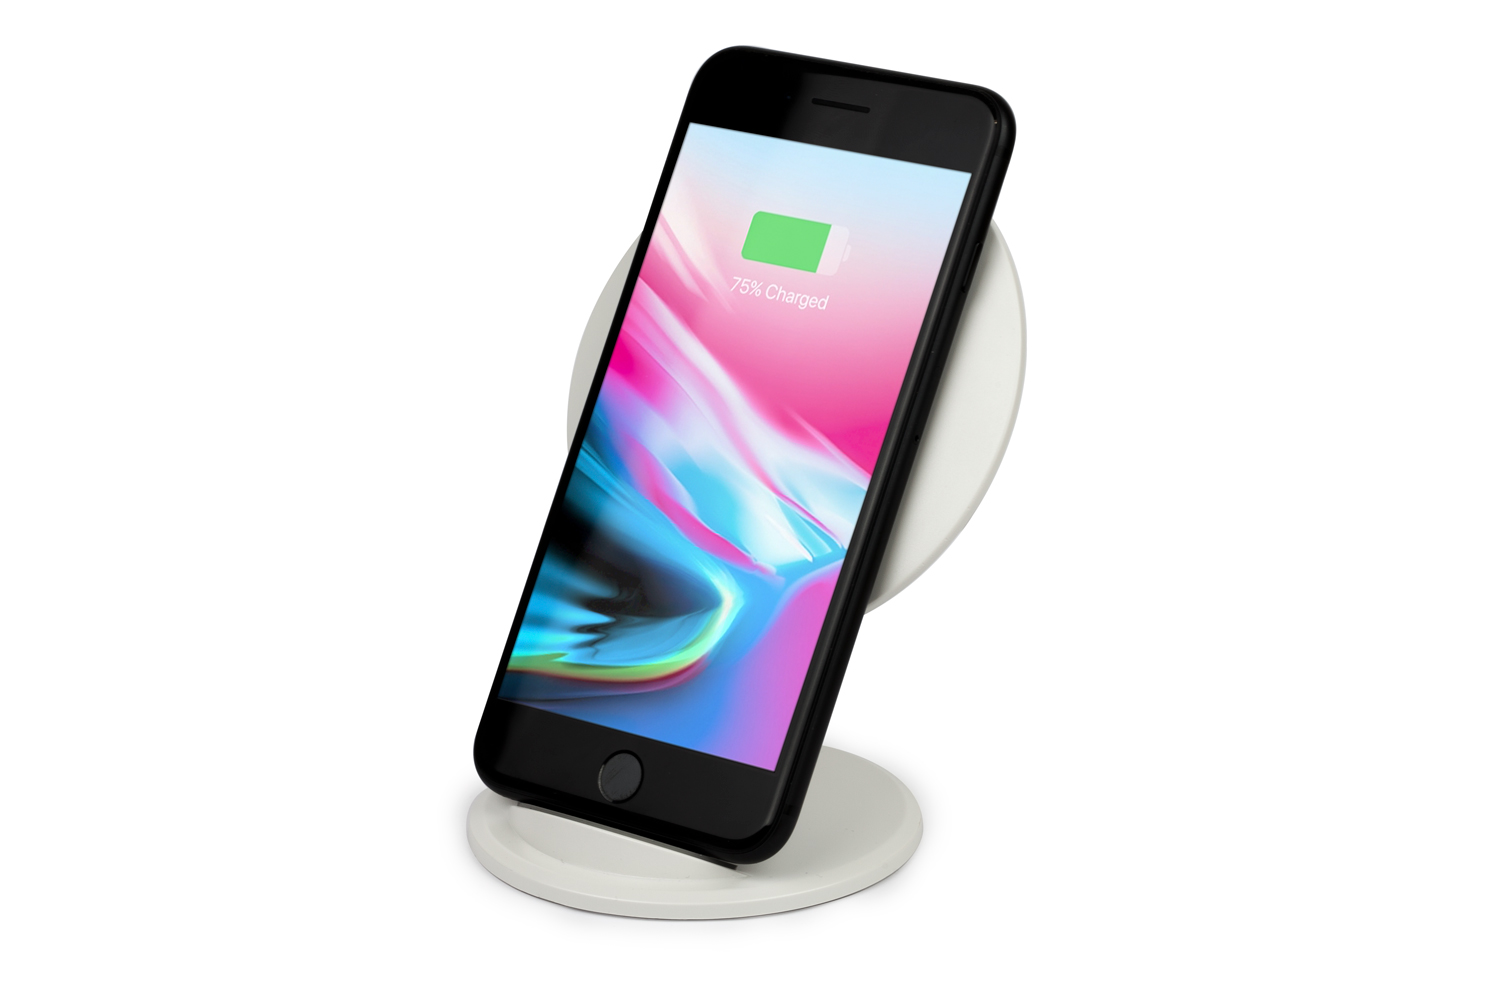 About Wireless Charging